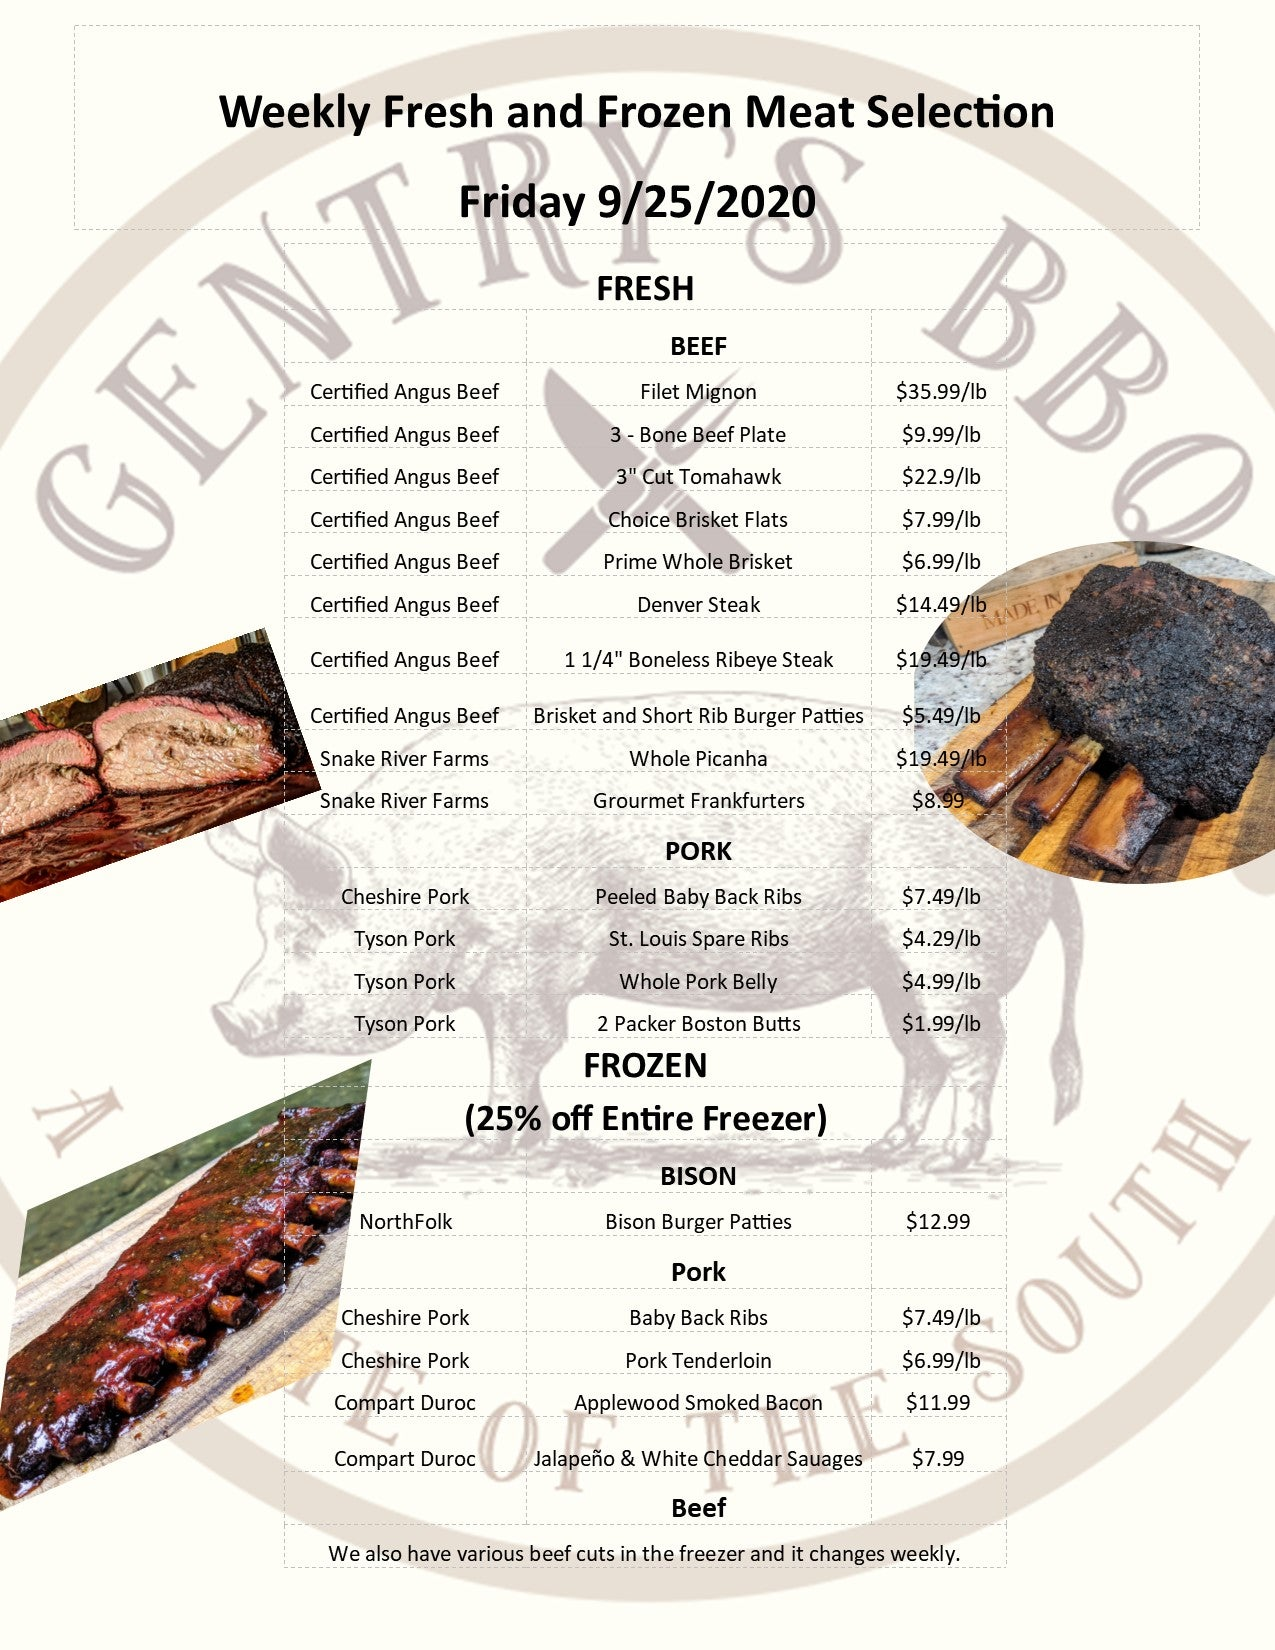 Friday 9-25-2020 Meat Selection